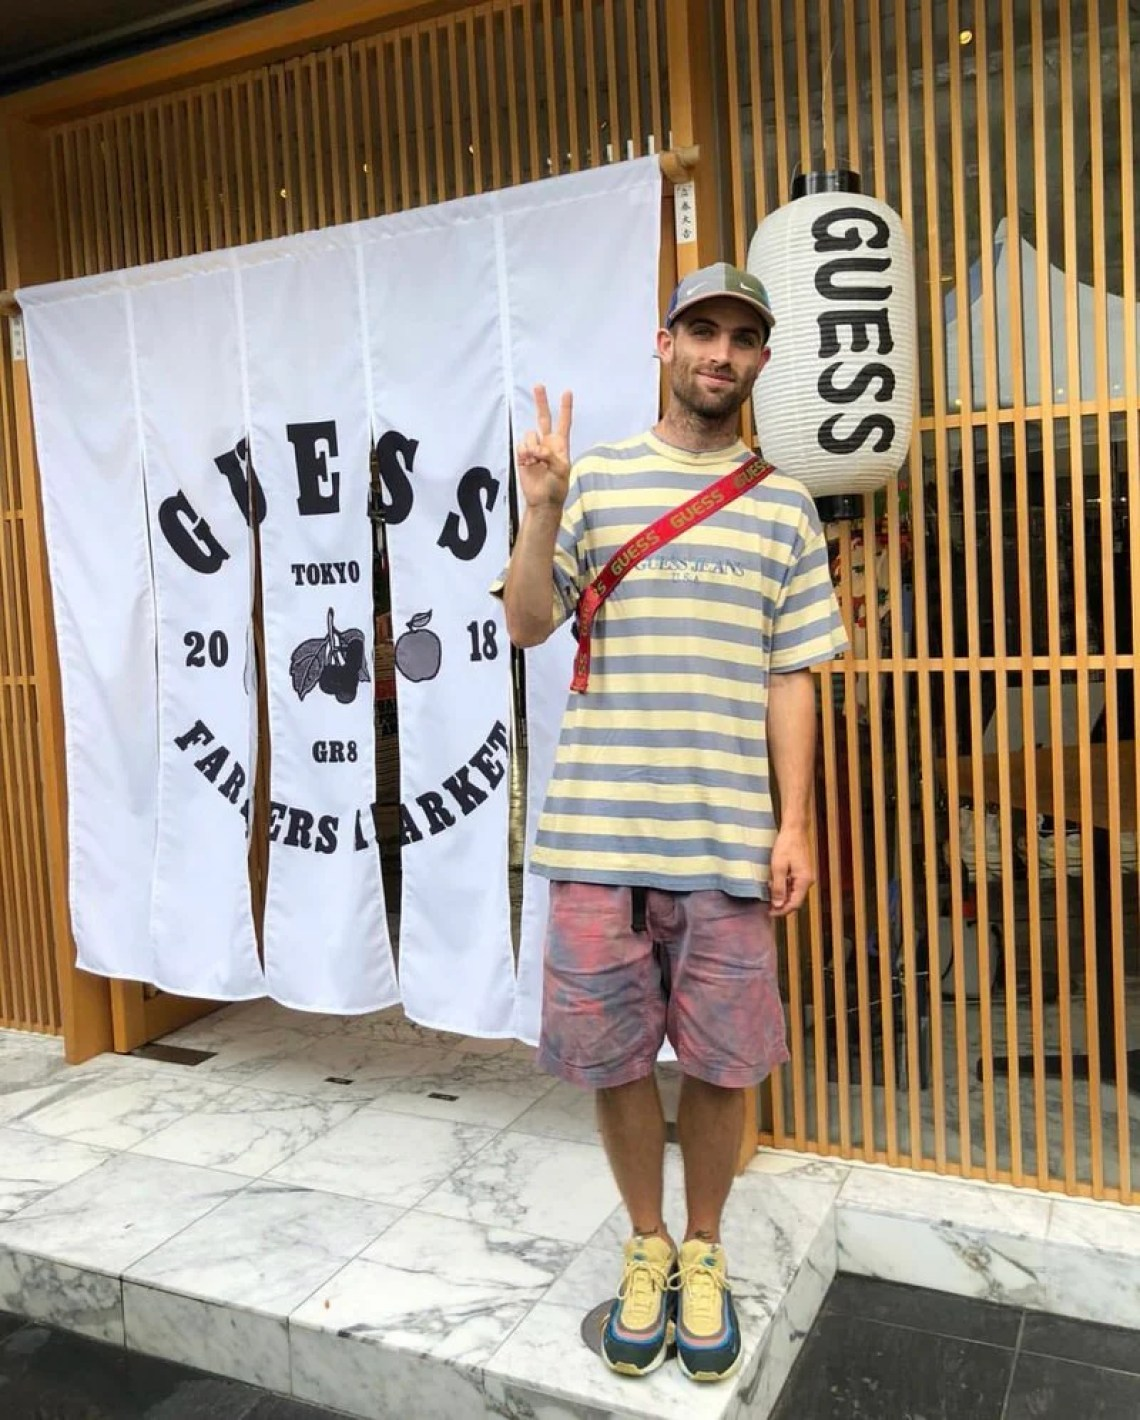 Tie-Dye shorts are just about the easiest way to wear the incoming tie-dye trend. Sean shows you that they go great with striped GUESS shirts and his Air Max 1/97s.